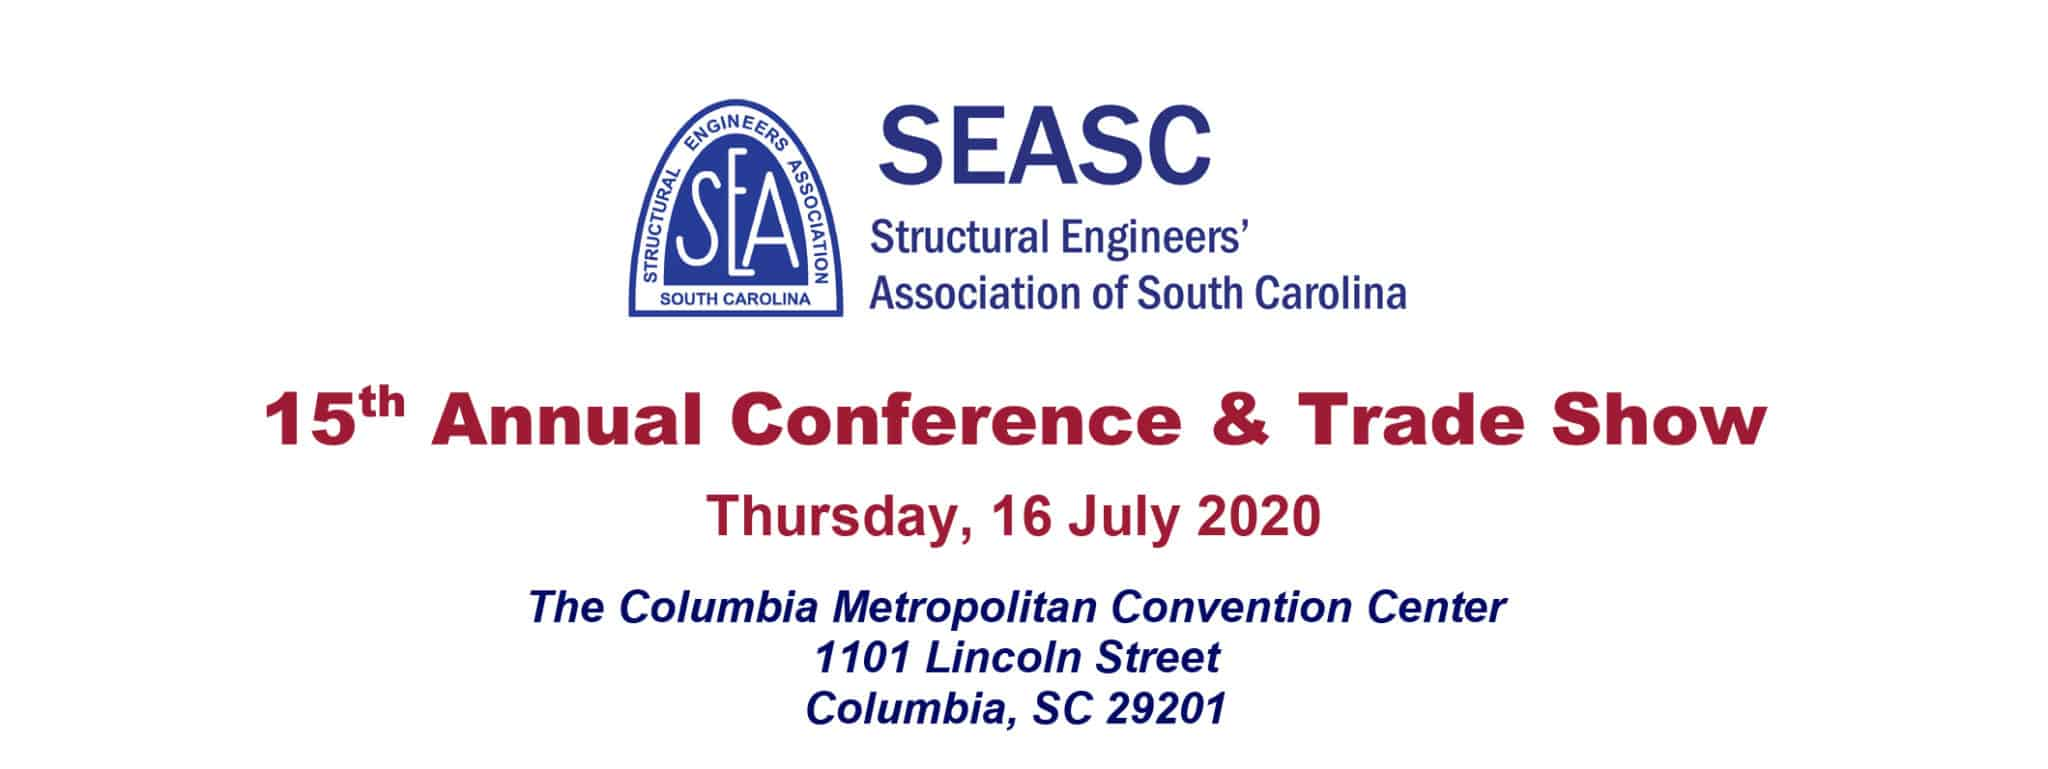 2020 Conference & Trade Show